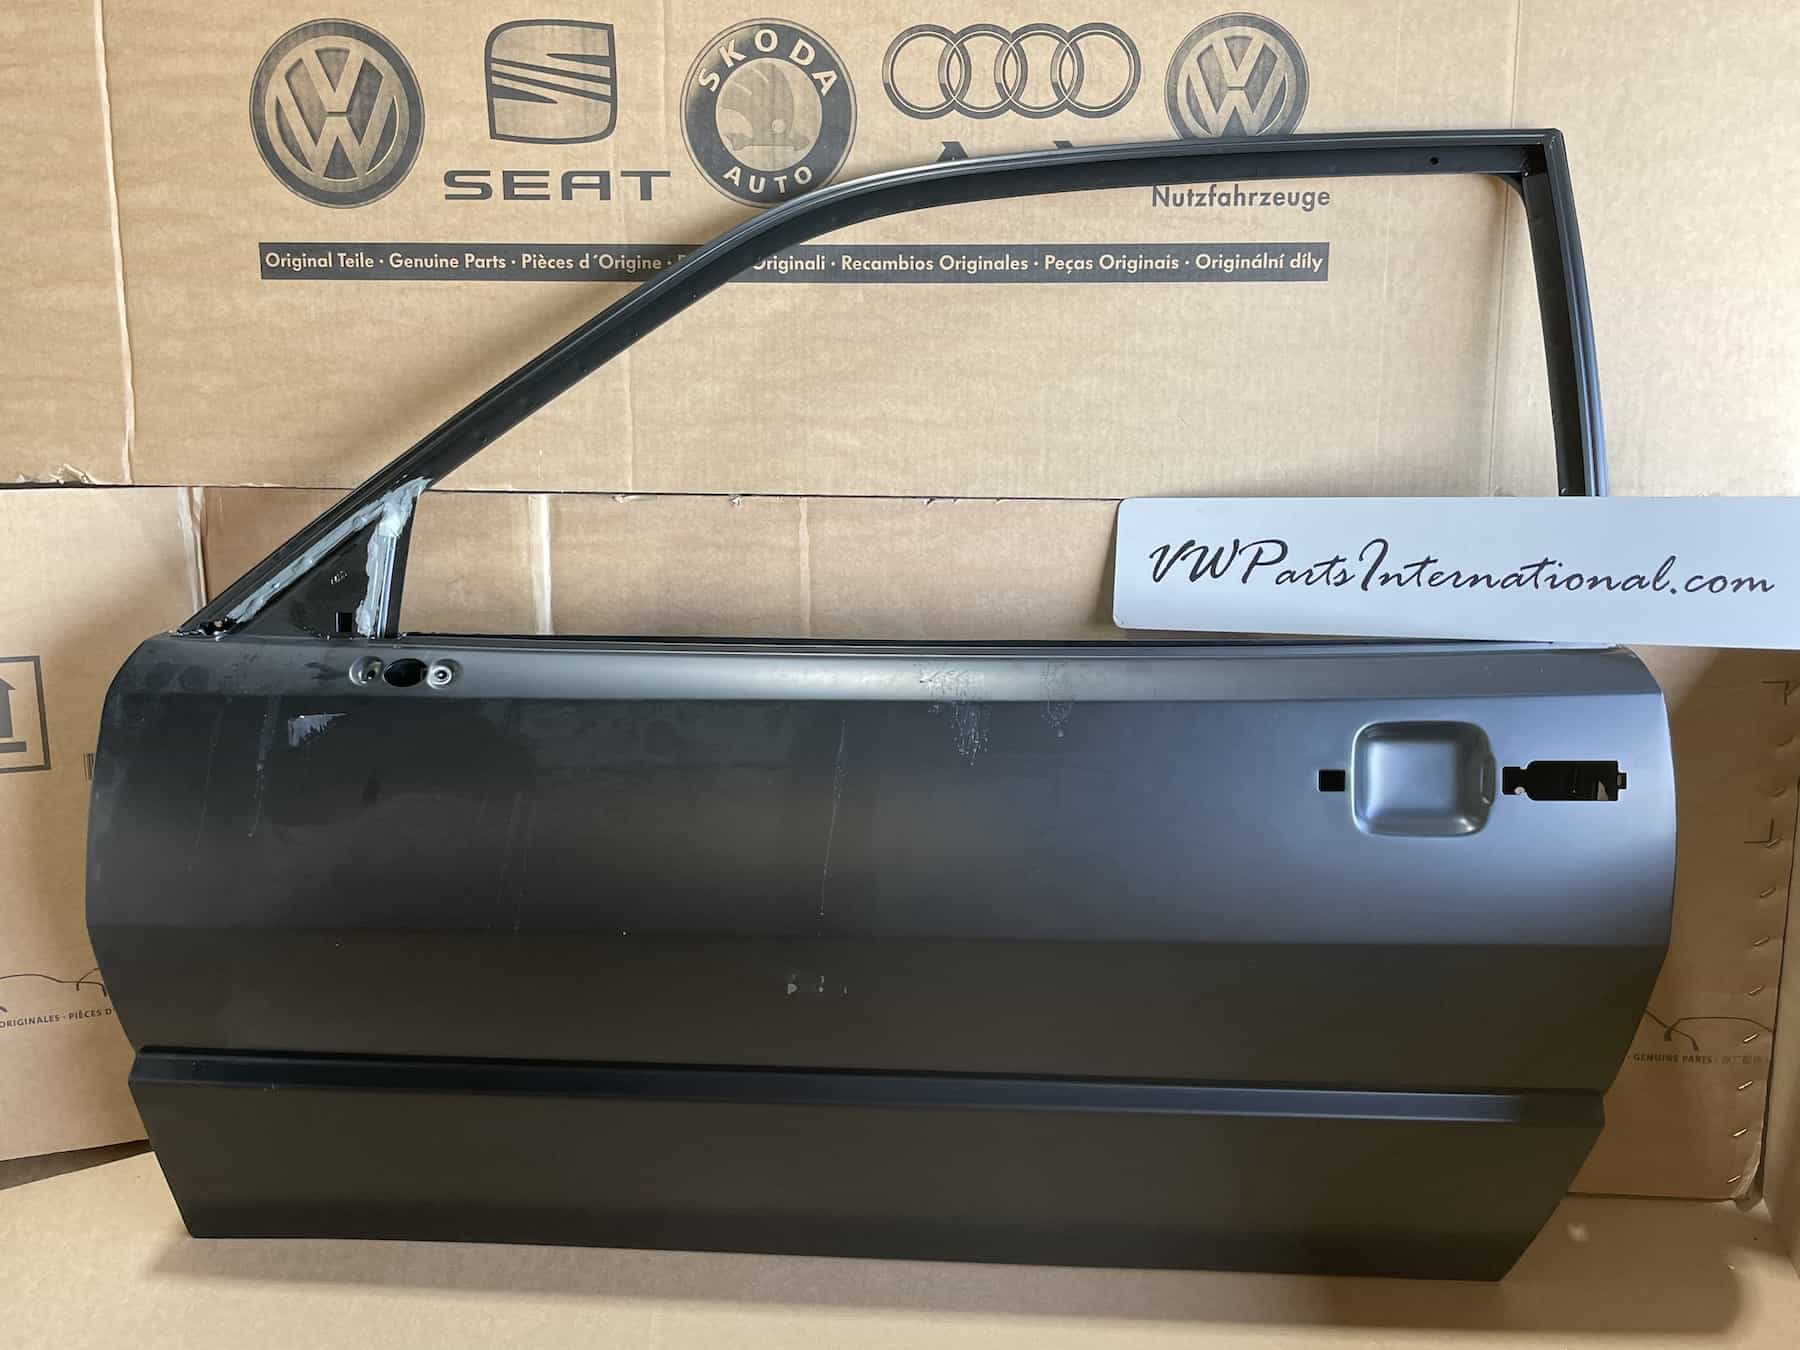 VW Corrado 1.8 G60 VR6 Front Left NS Replacement Door Brand New Genuine NOS OEM VW Part 535831051AN